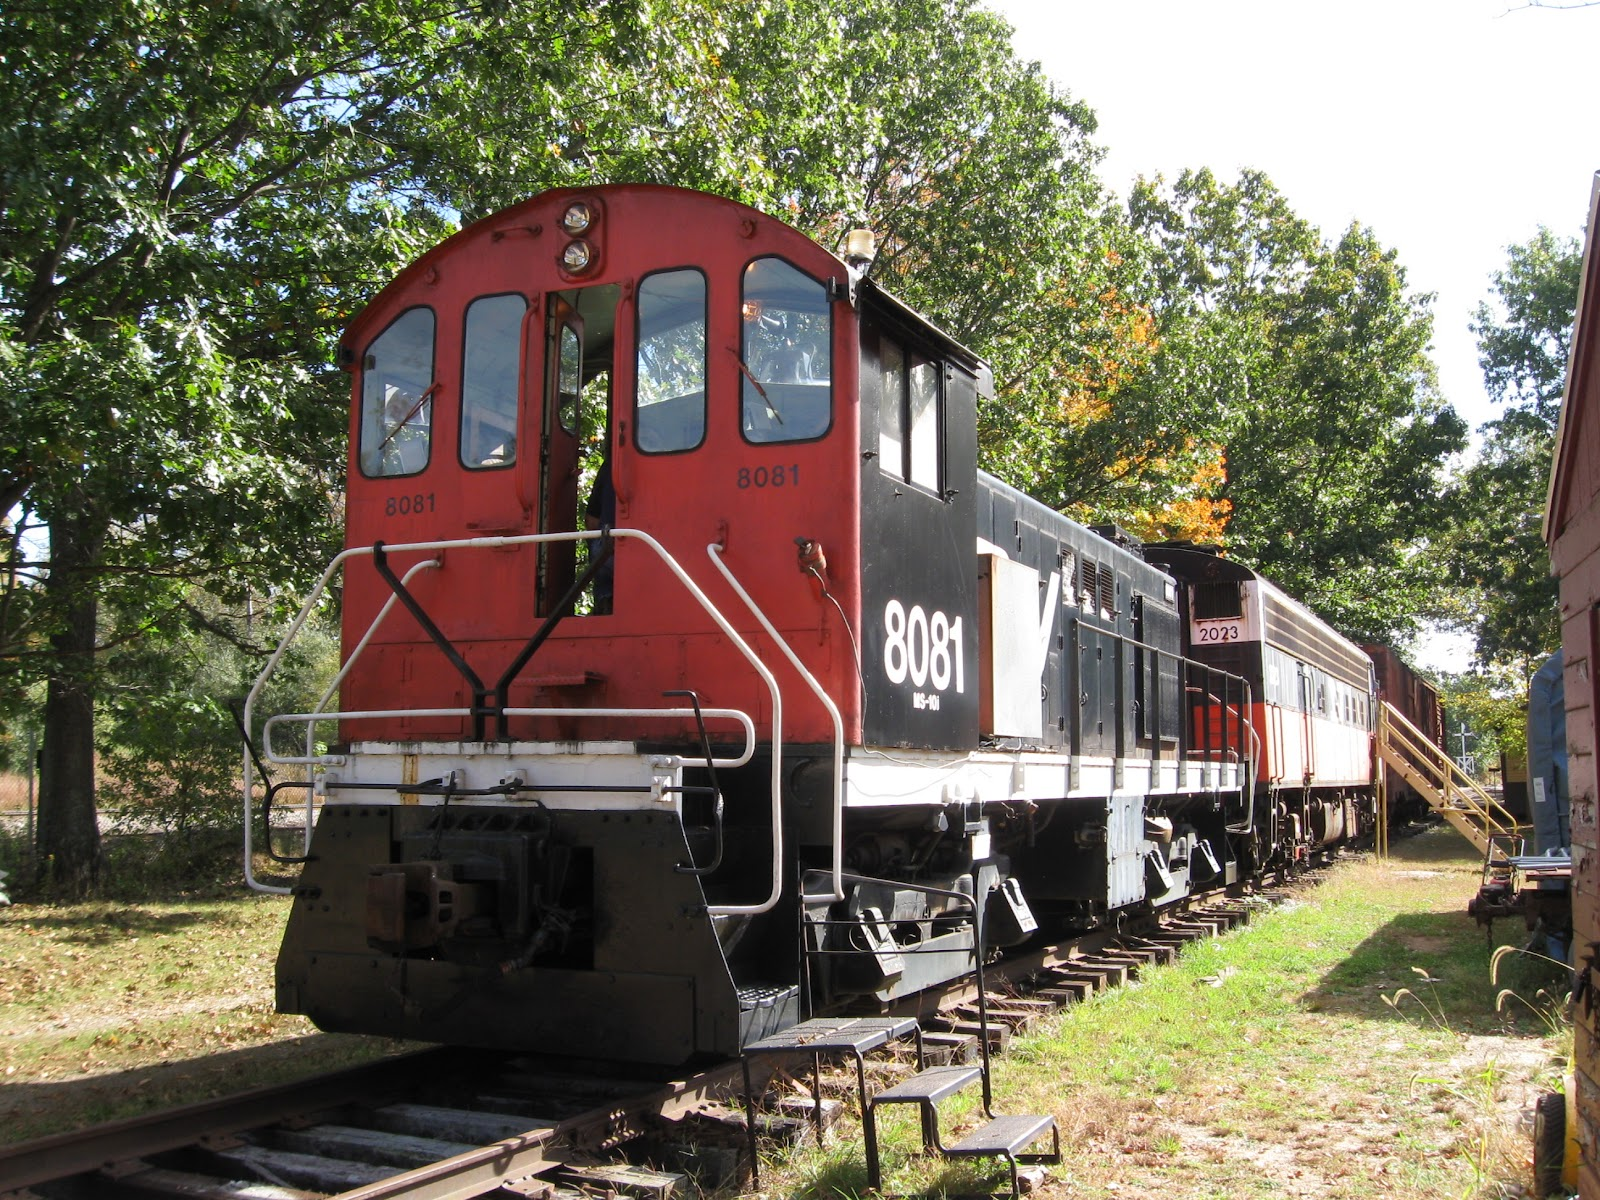 White River Division: Connecticut Eastern Railroad Museum